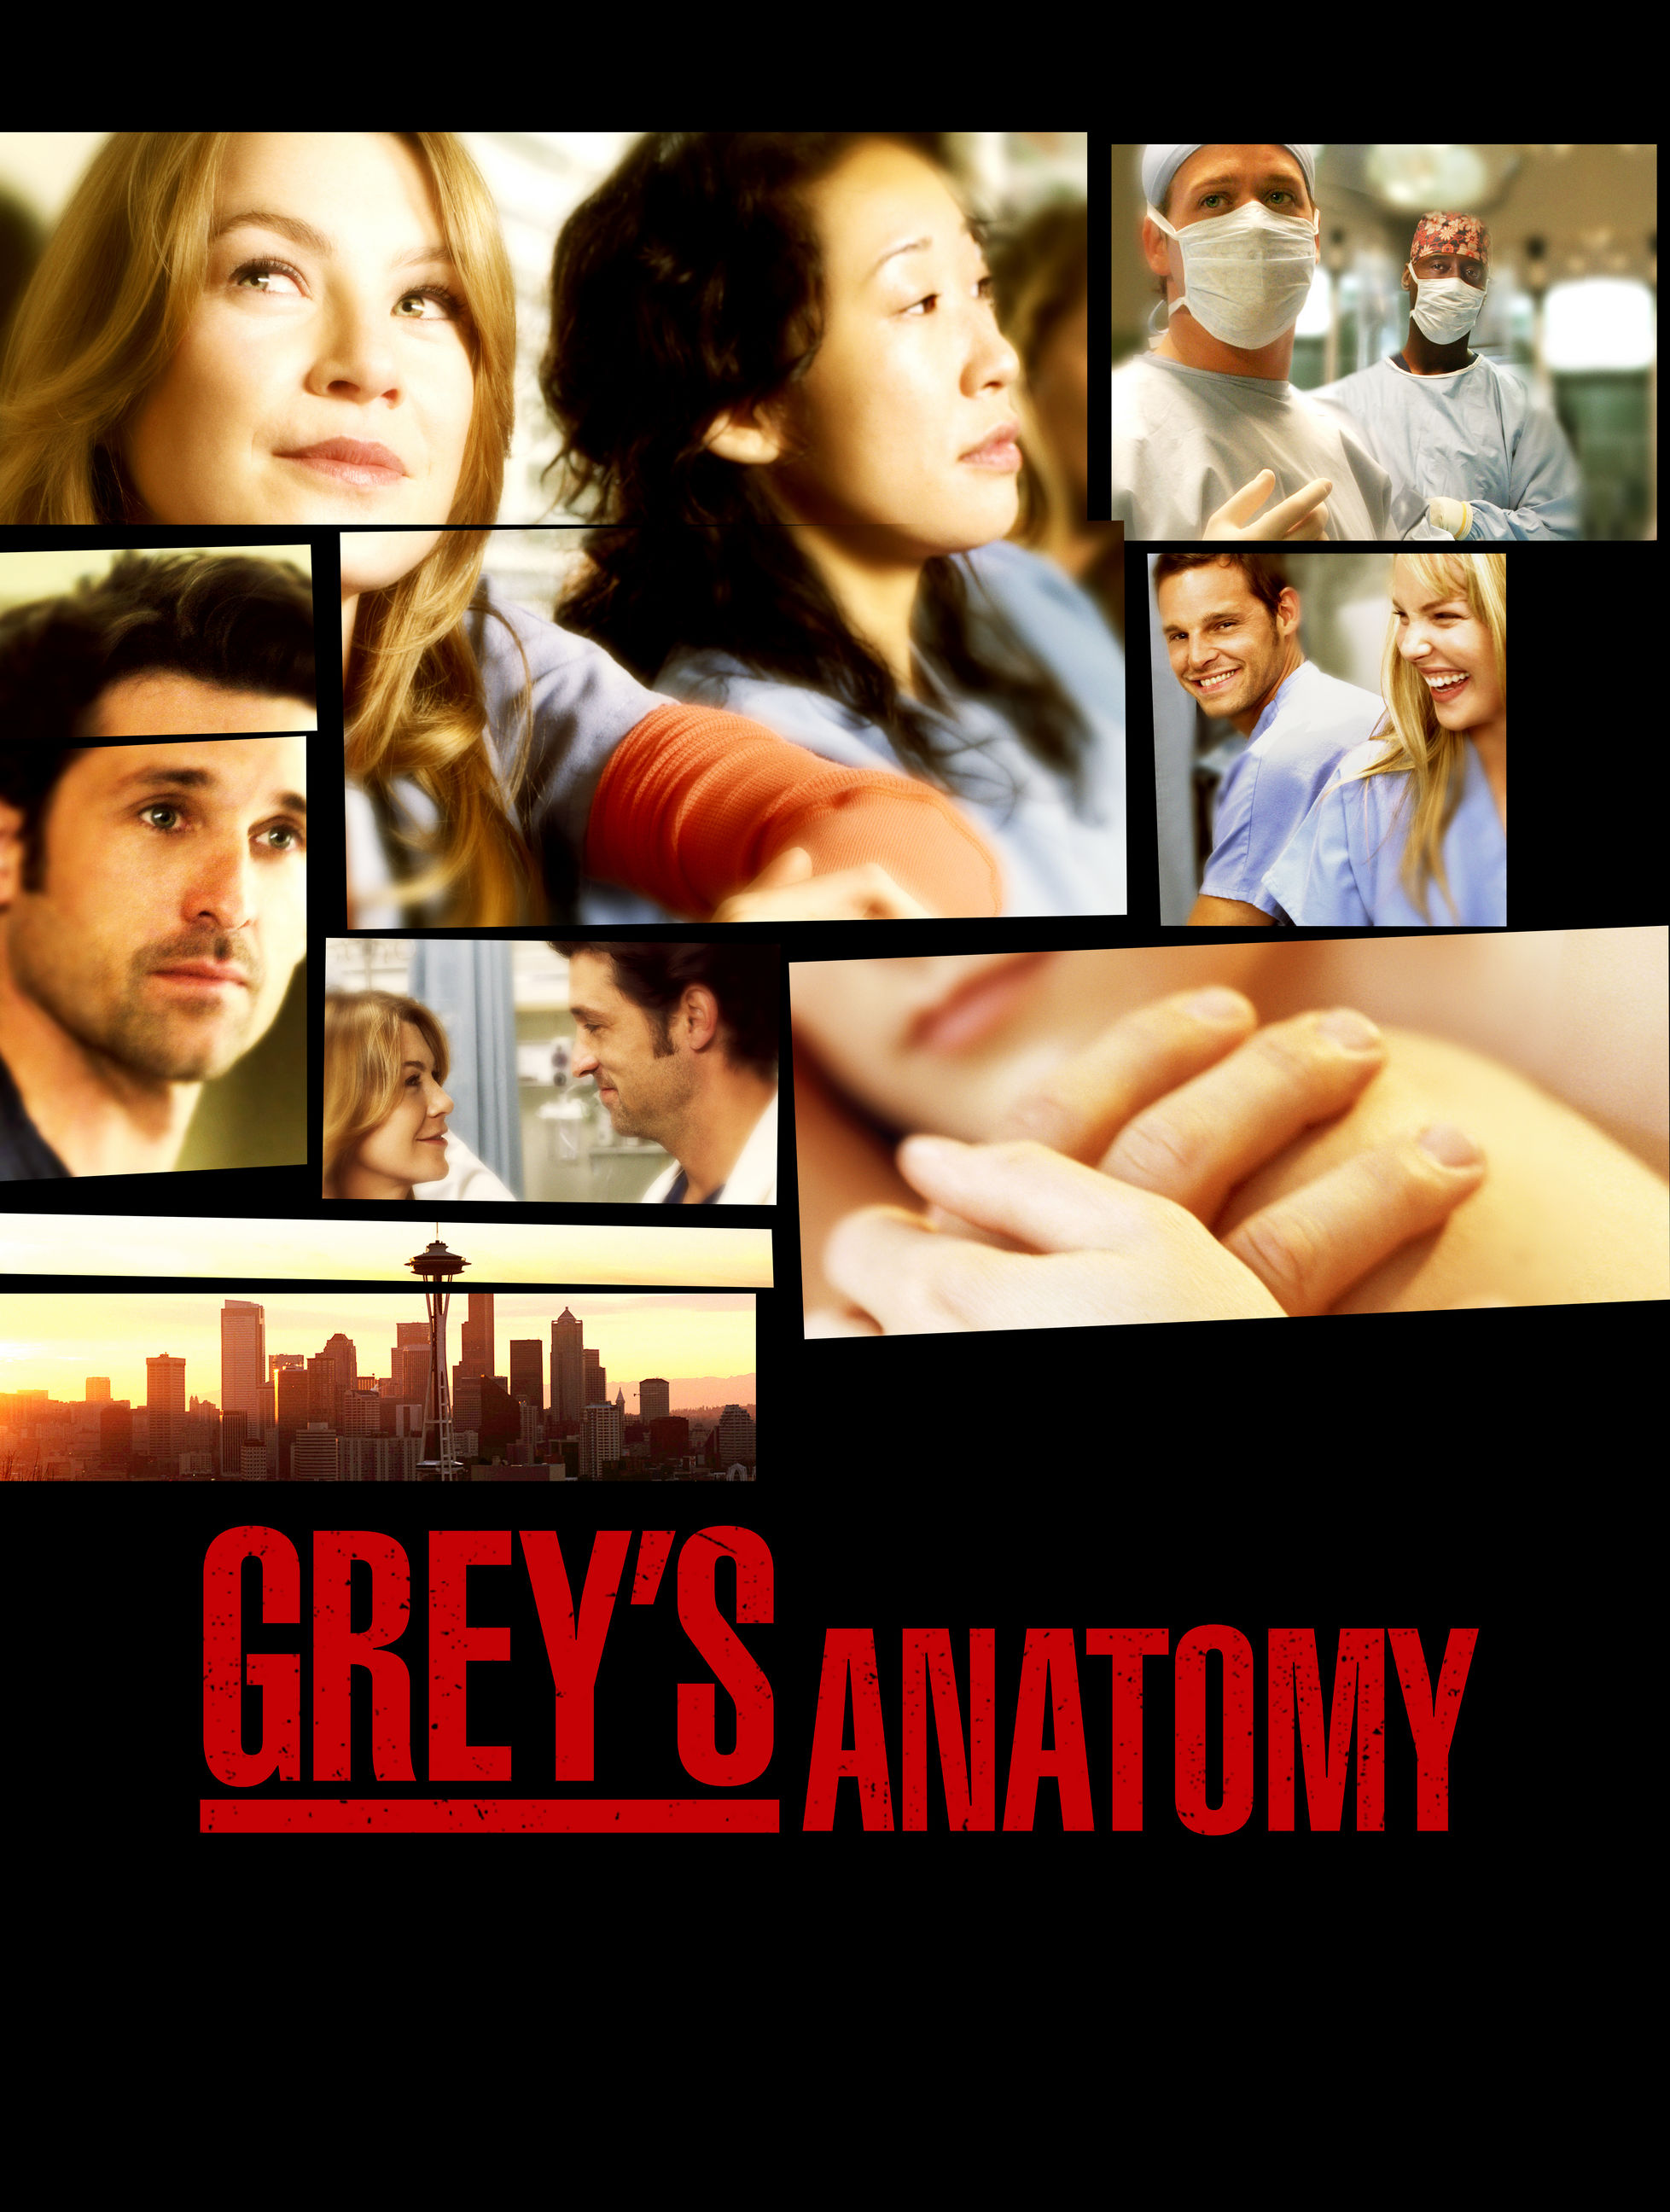 greys_anatomy_posters_season1_001